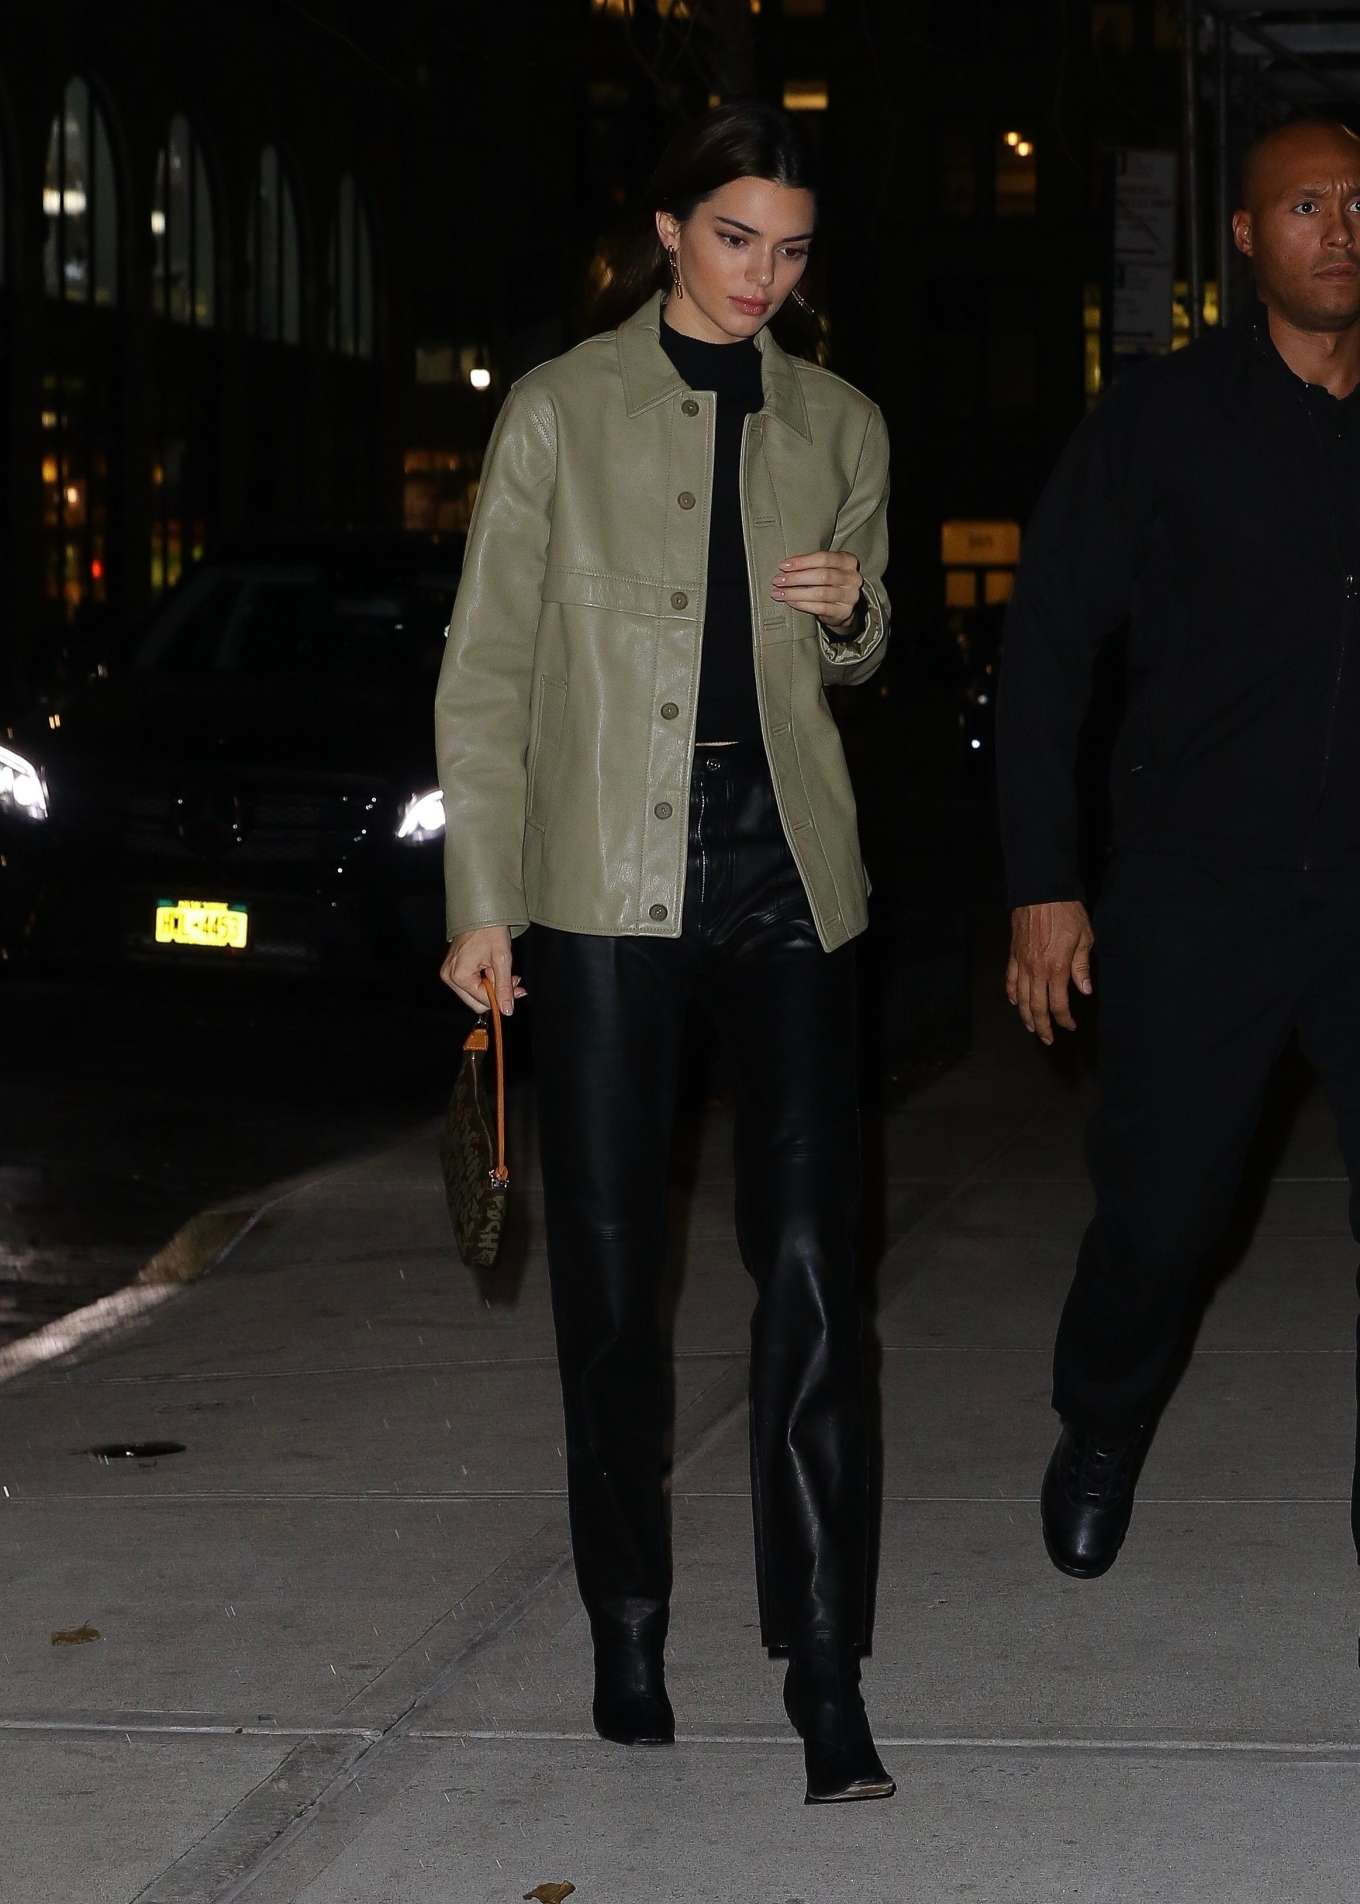 Kendall Jenner rocking Narrow fit black leather jeans with a leather material